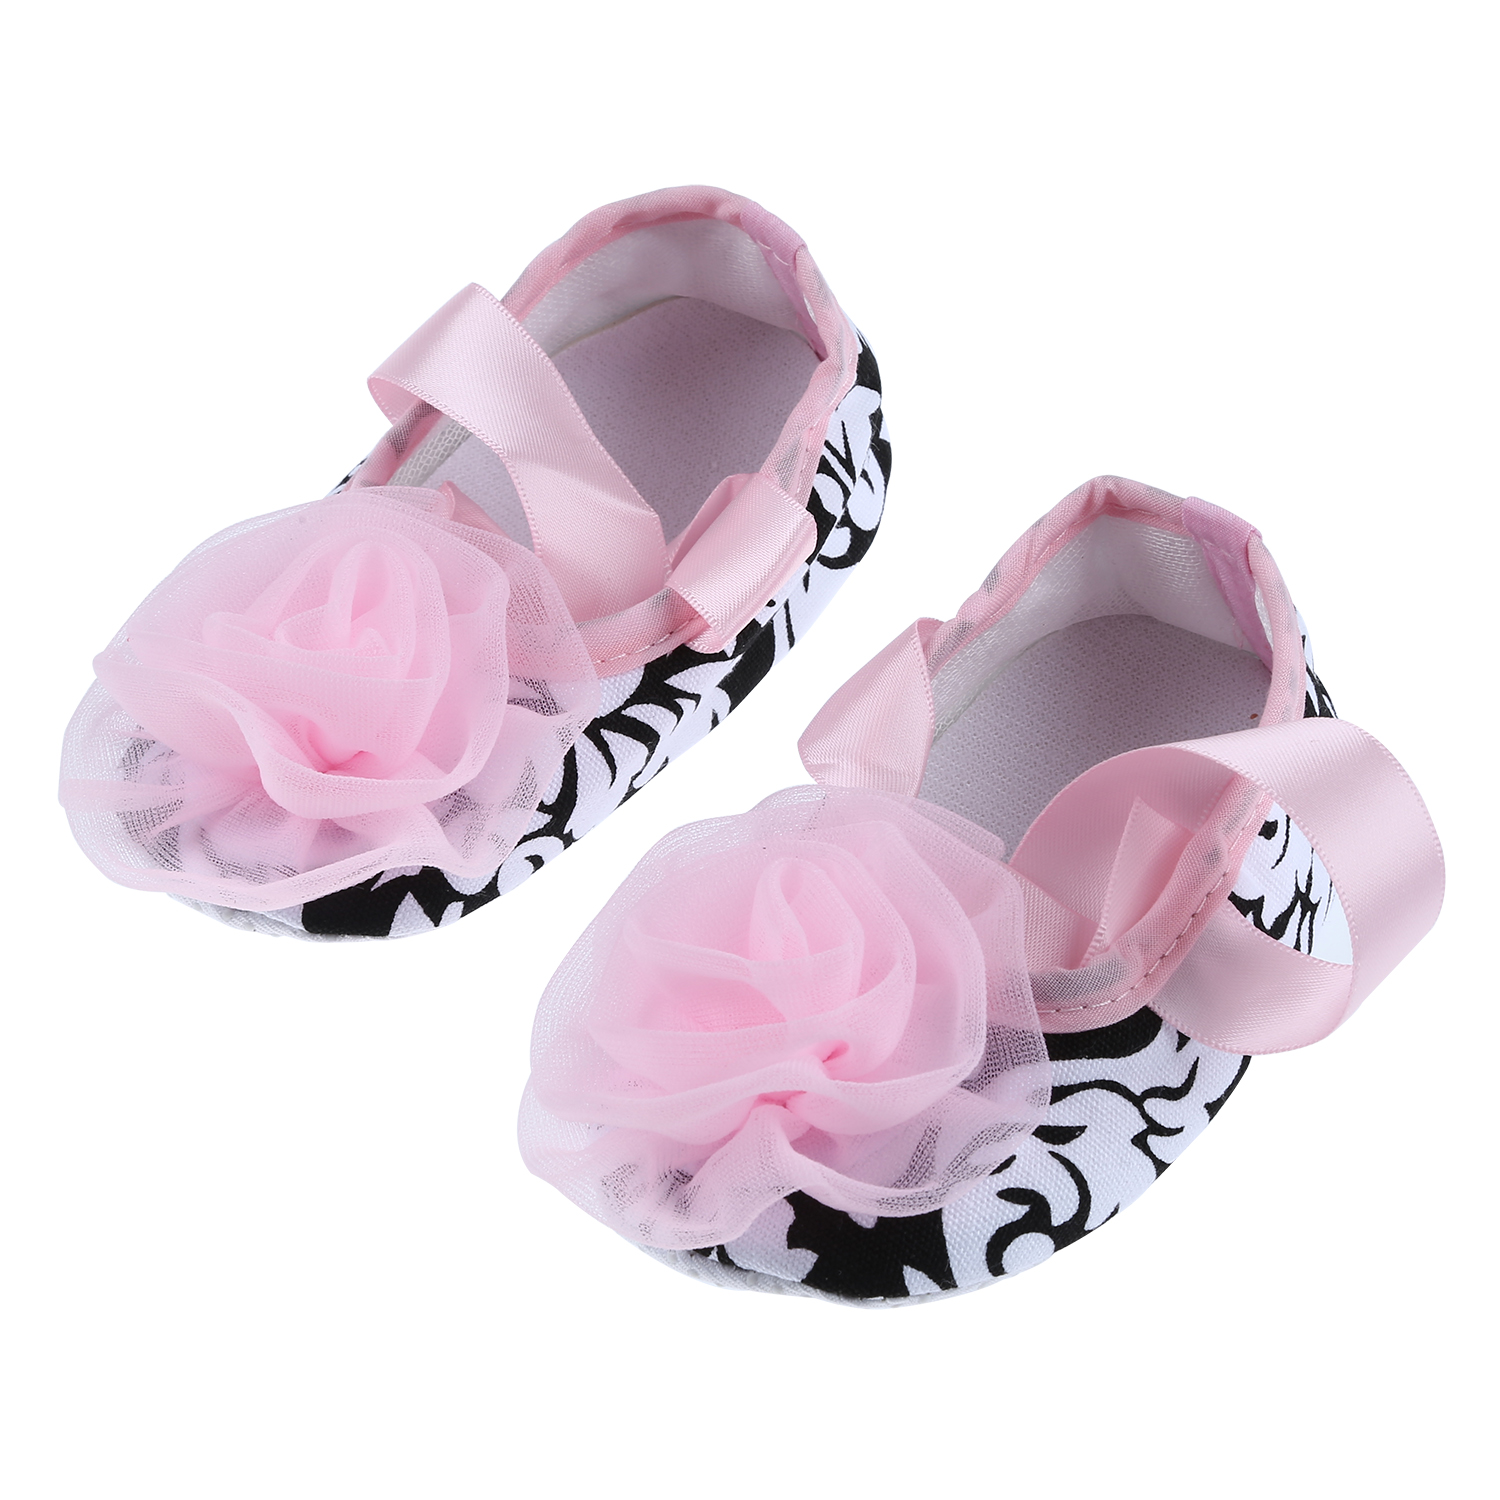 infant baby shoes soft soles non slip pink silk